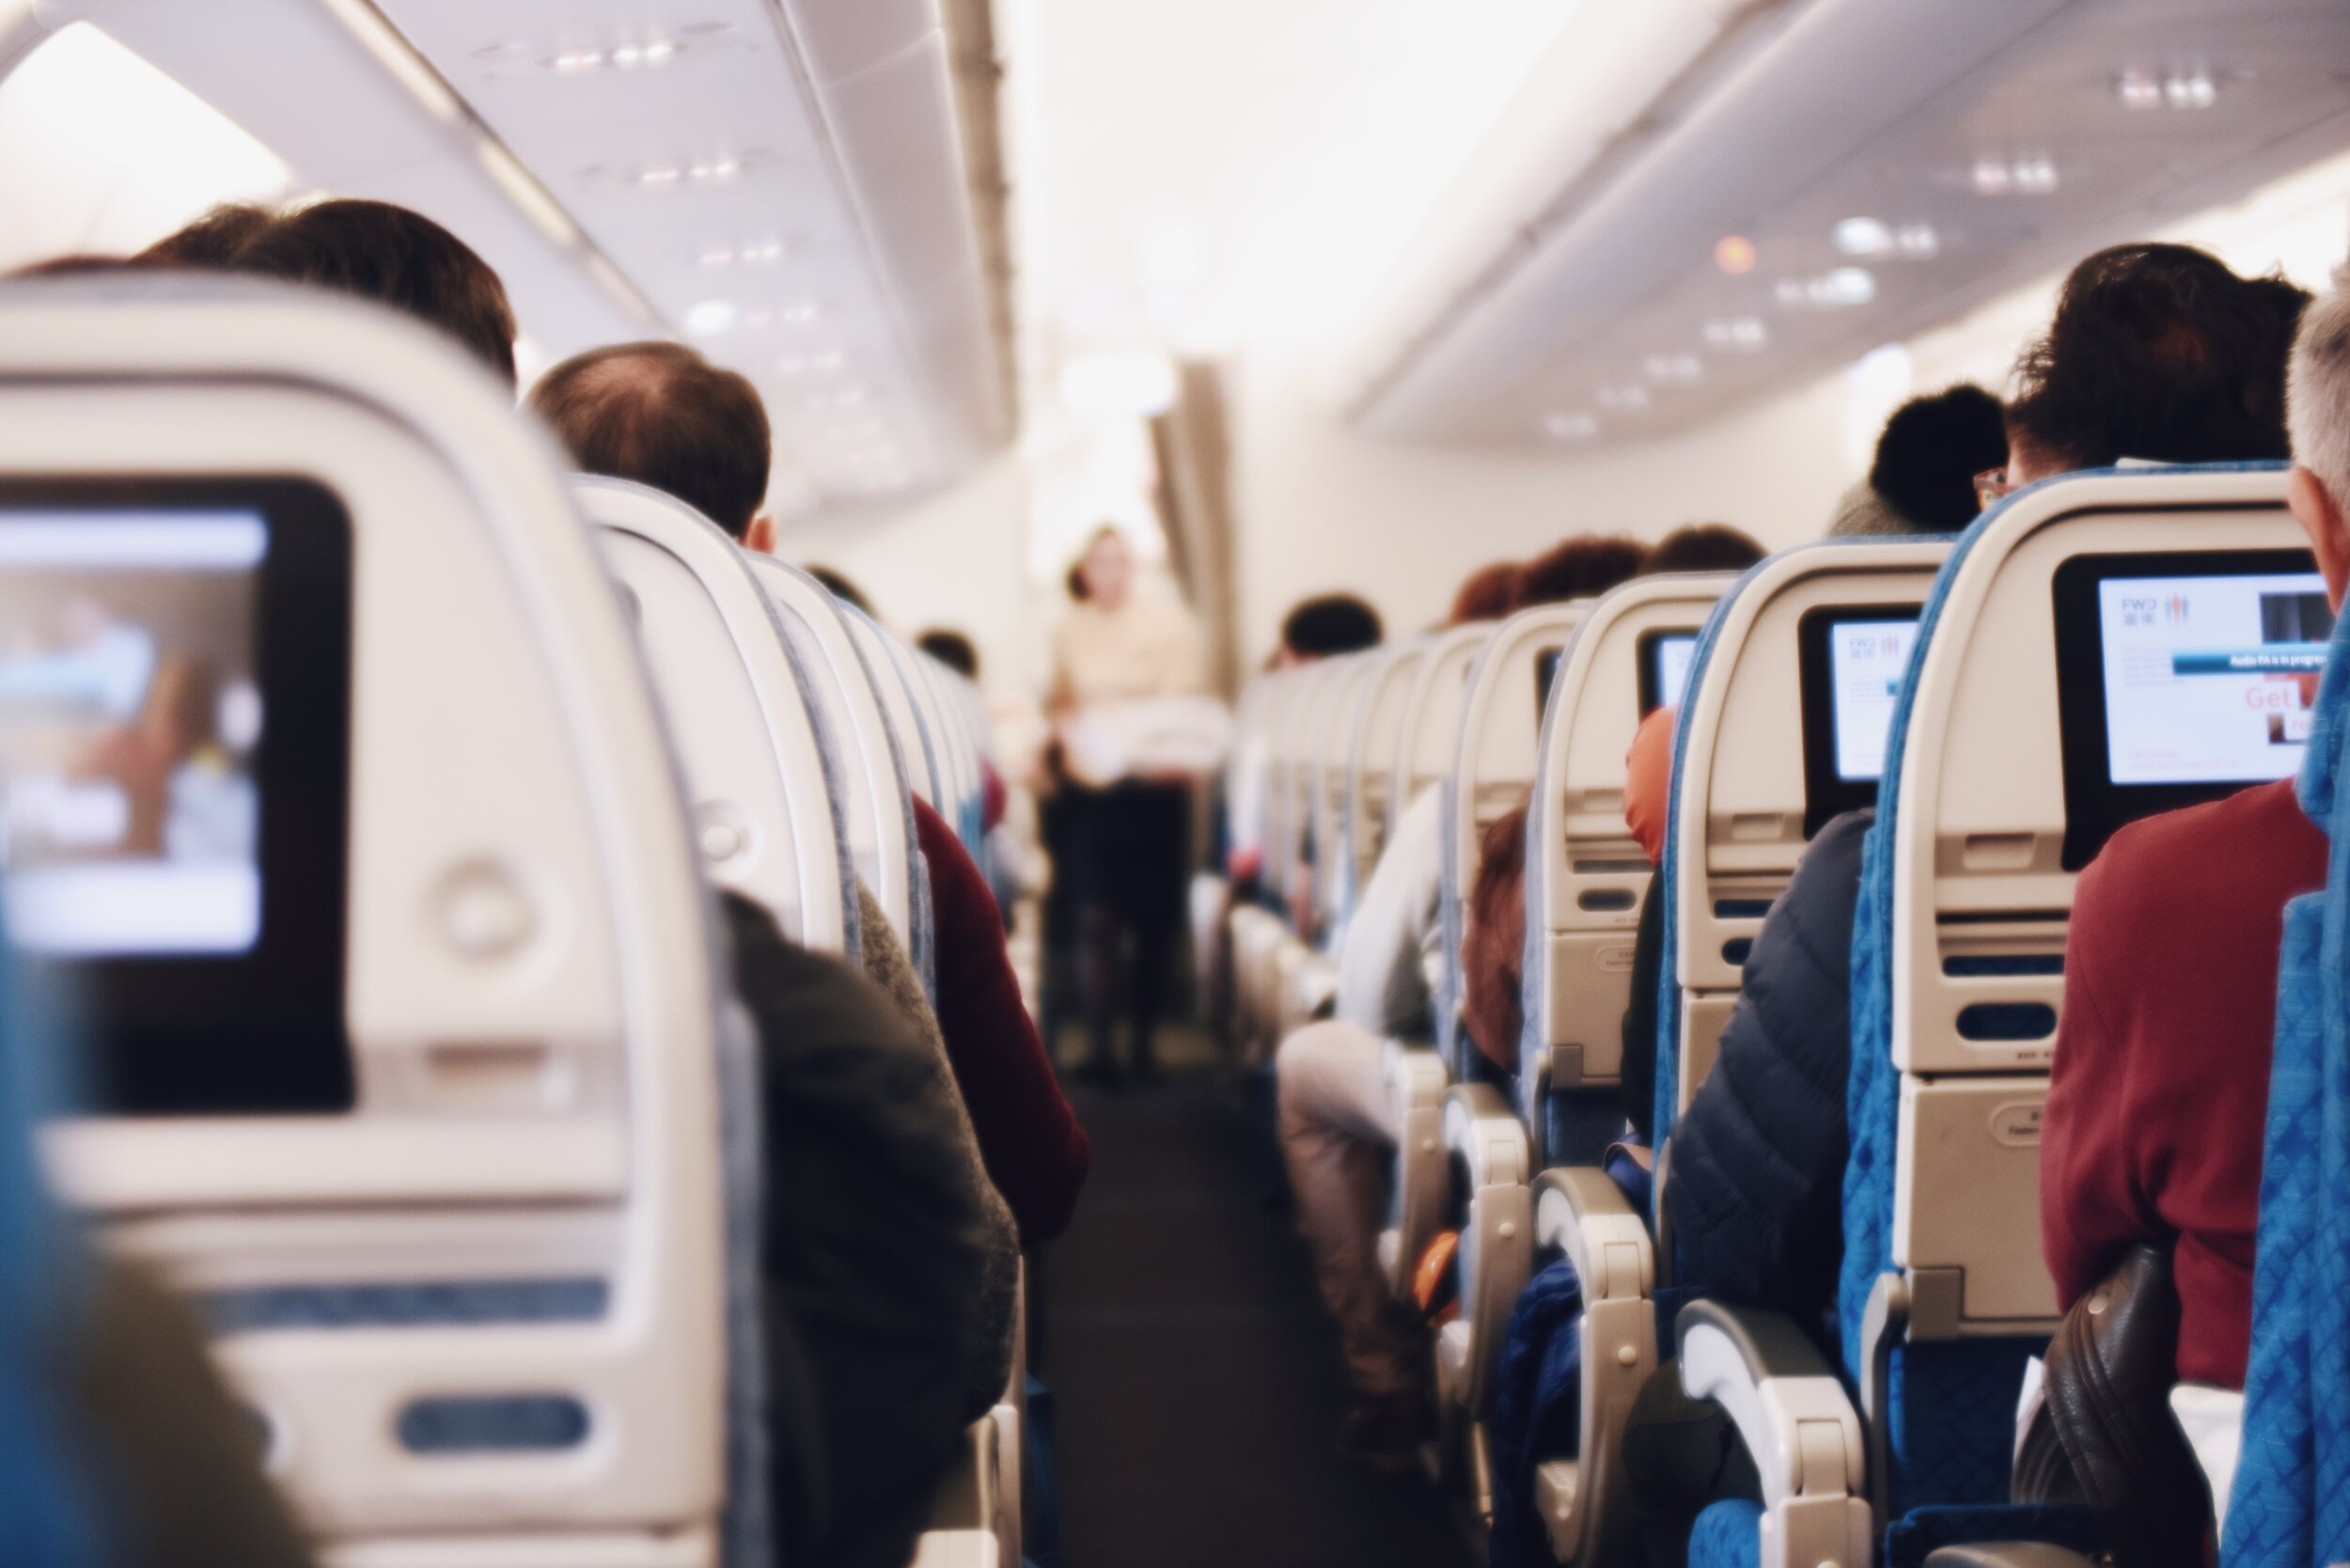 US AIR TRAVEL IS NO LONGER AT ROCK BOTTOM, BUT RECOVERY REMAINS ANEMIC